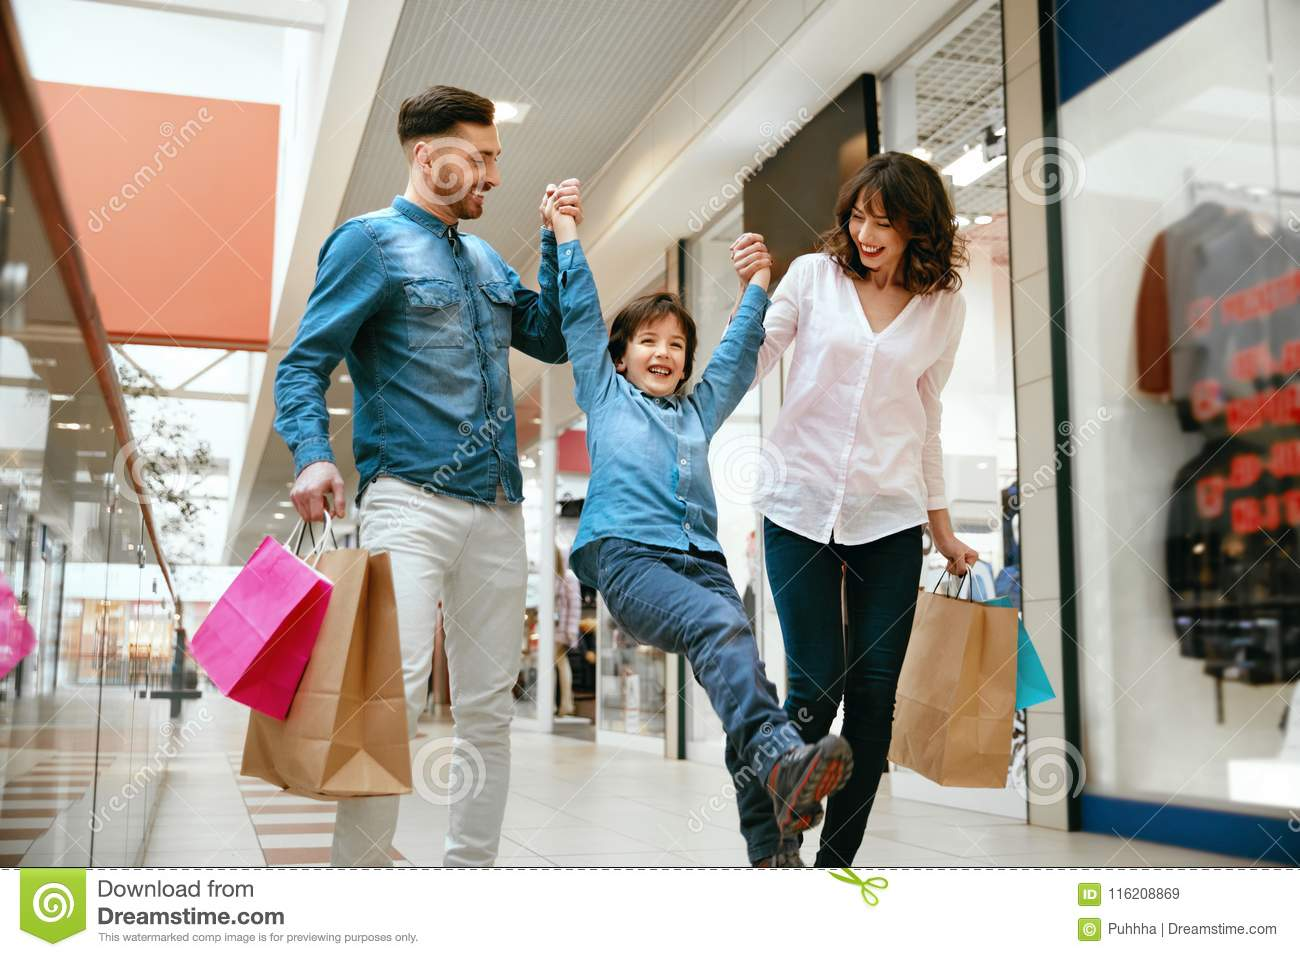 68313b4ad Family Shopping. Happy People With Child Carrying Bags, Walking In Modern  Mall. High Resolution.